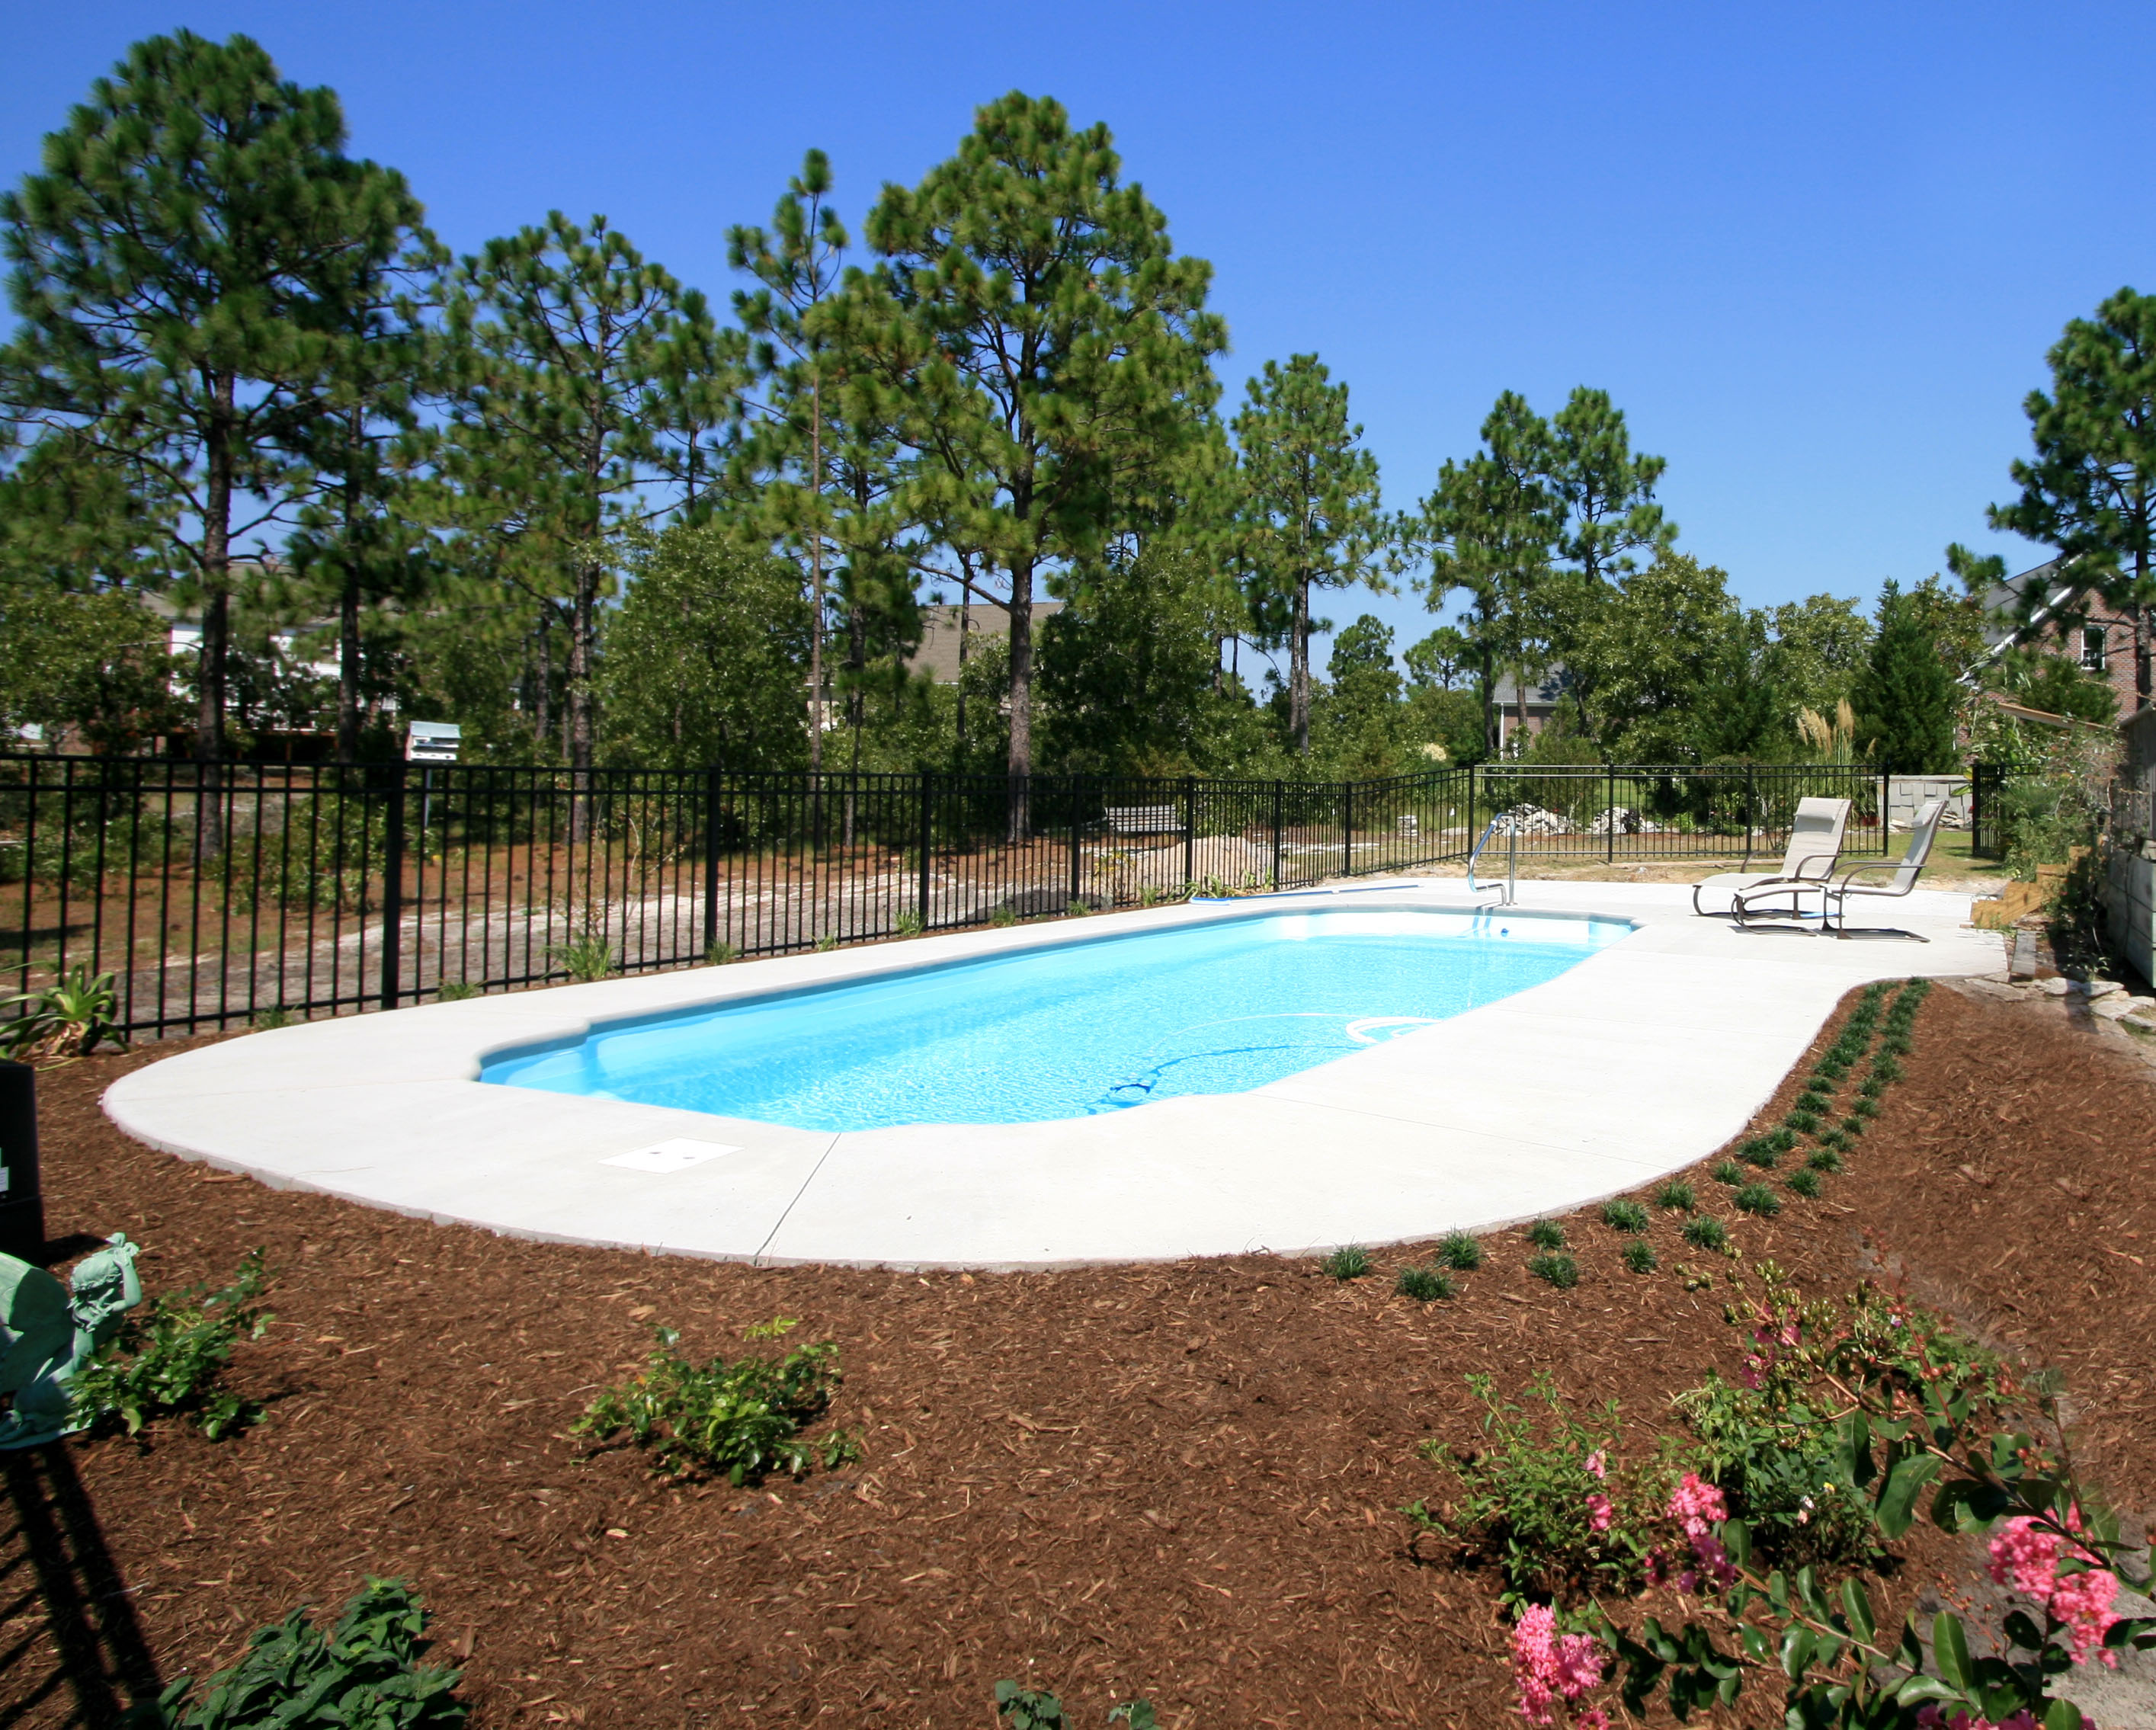 By Raising The Pool A Little To Meet Grade On Upslope Of Yard And Building Sloping Berm Opposite Side Retaining Wall Will Become